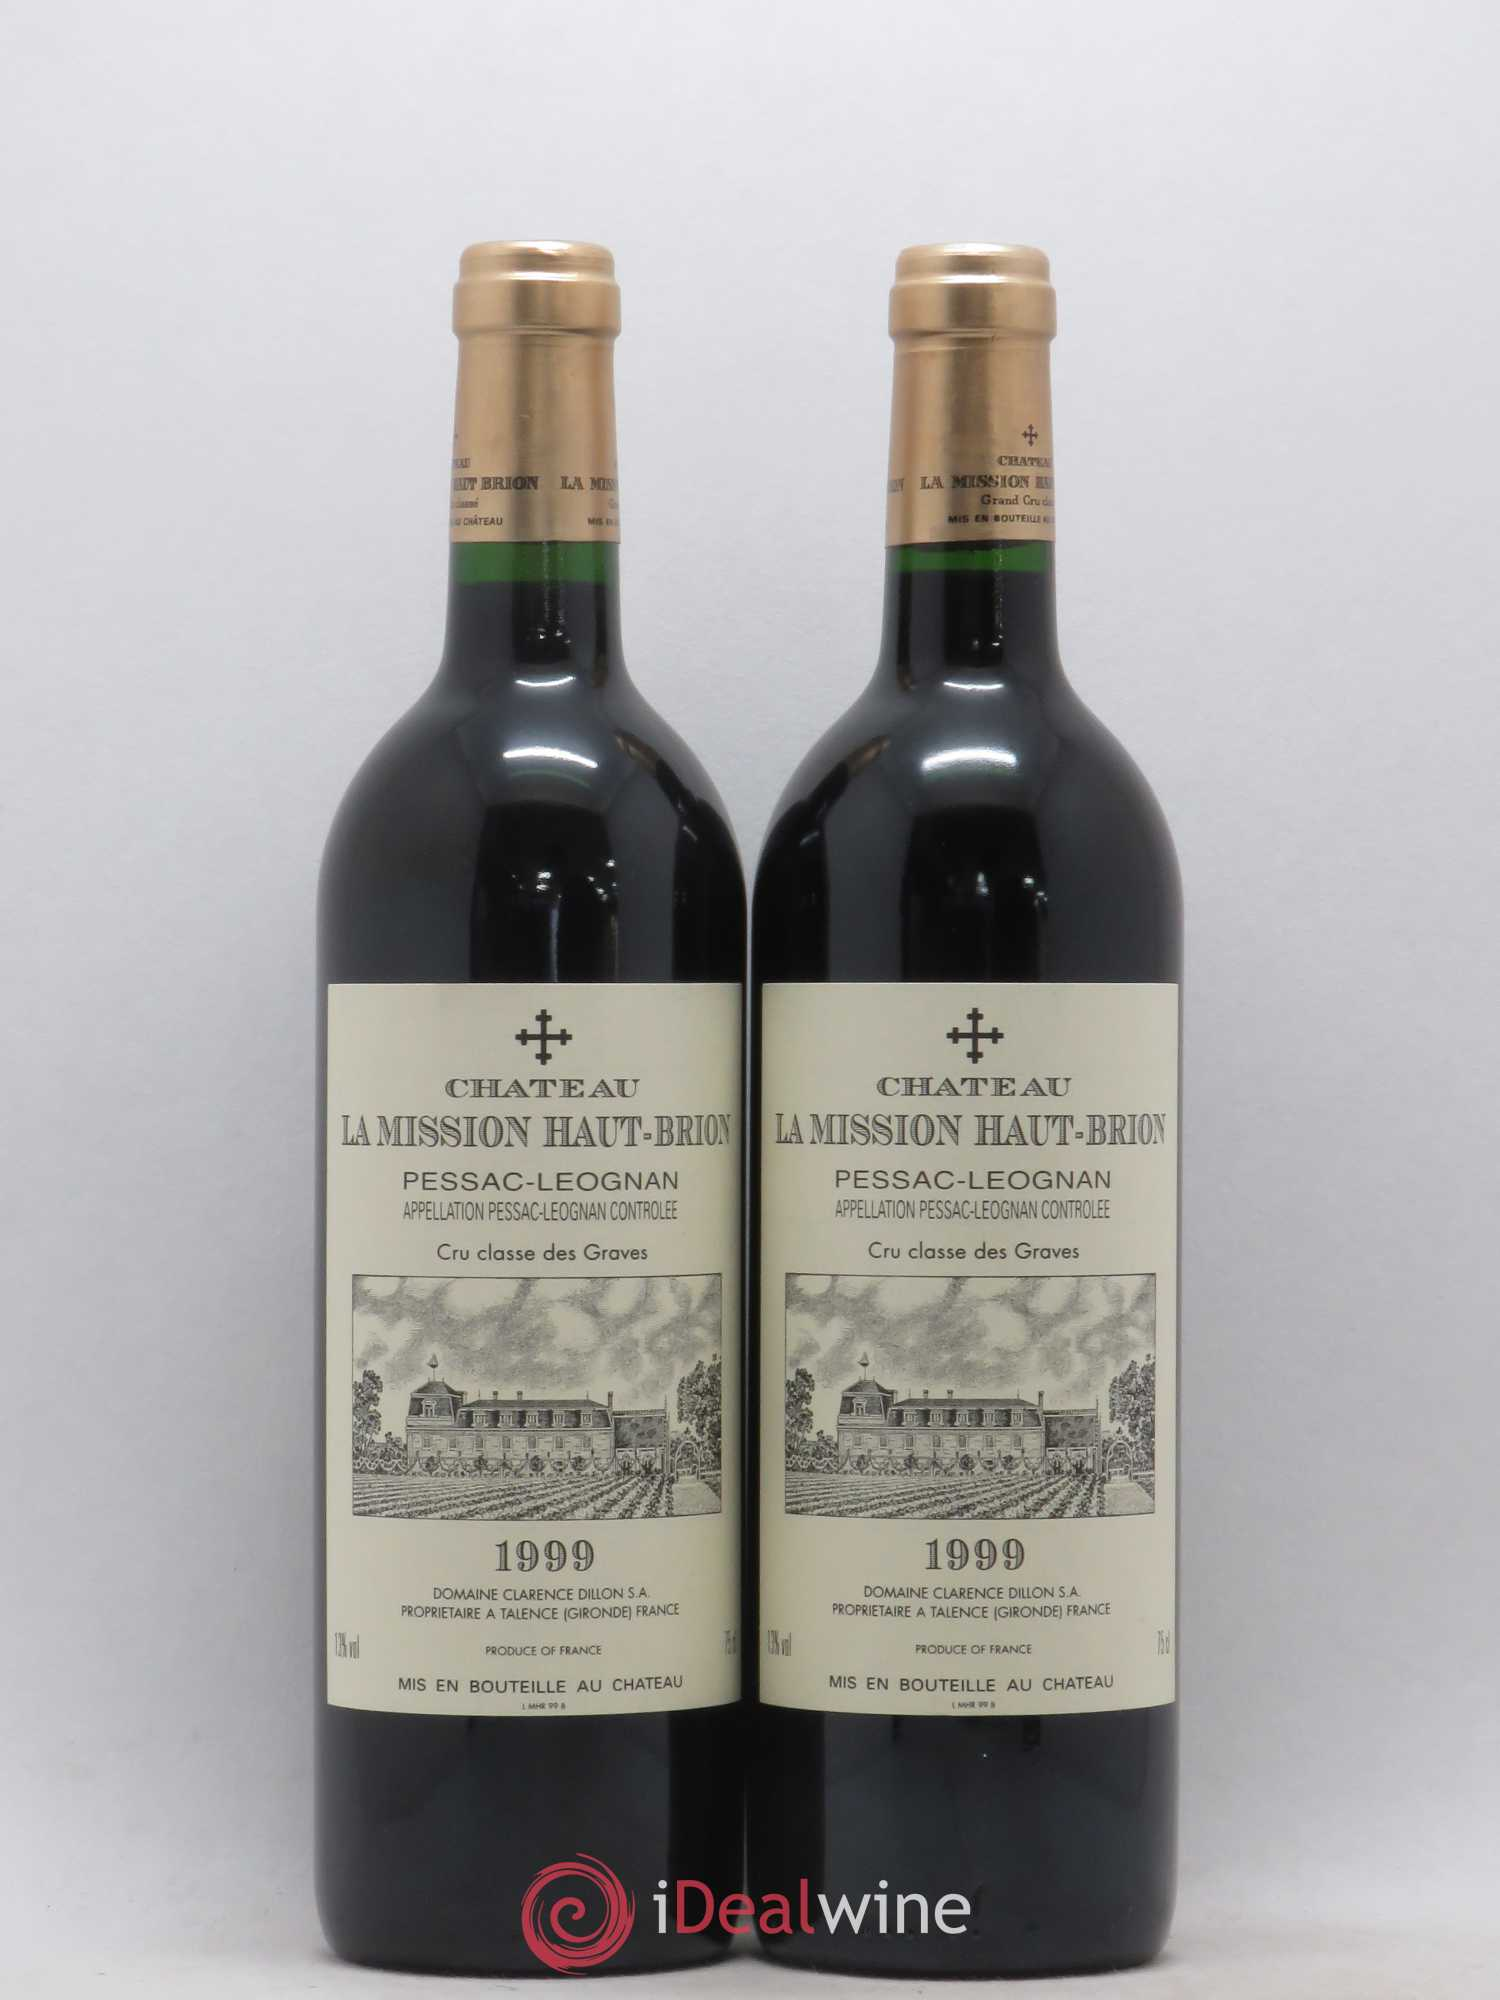 Château La Mission Haut-Brion Cru Classé de Graves  1999 - Lot of 2 Bottles